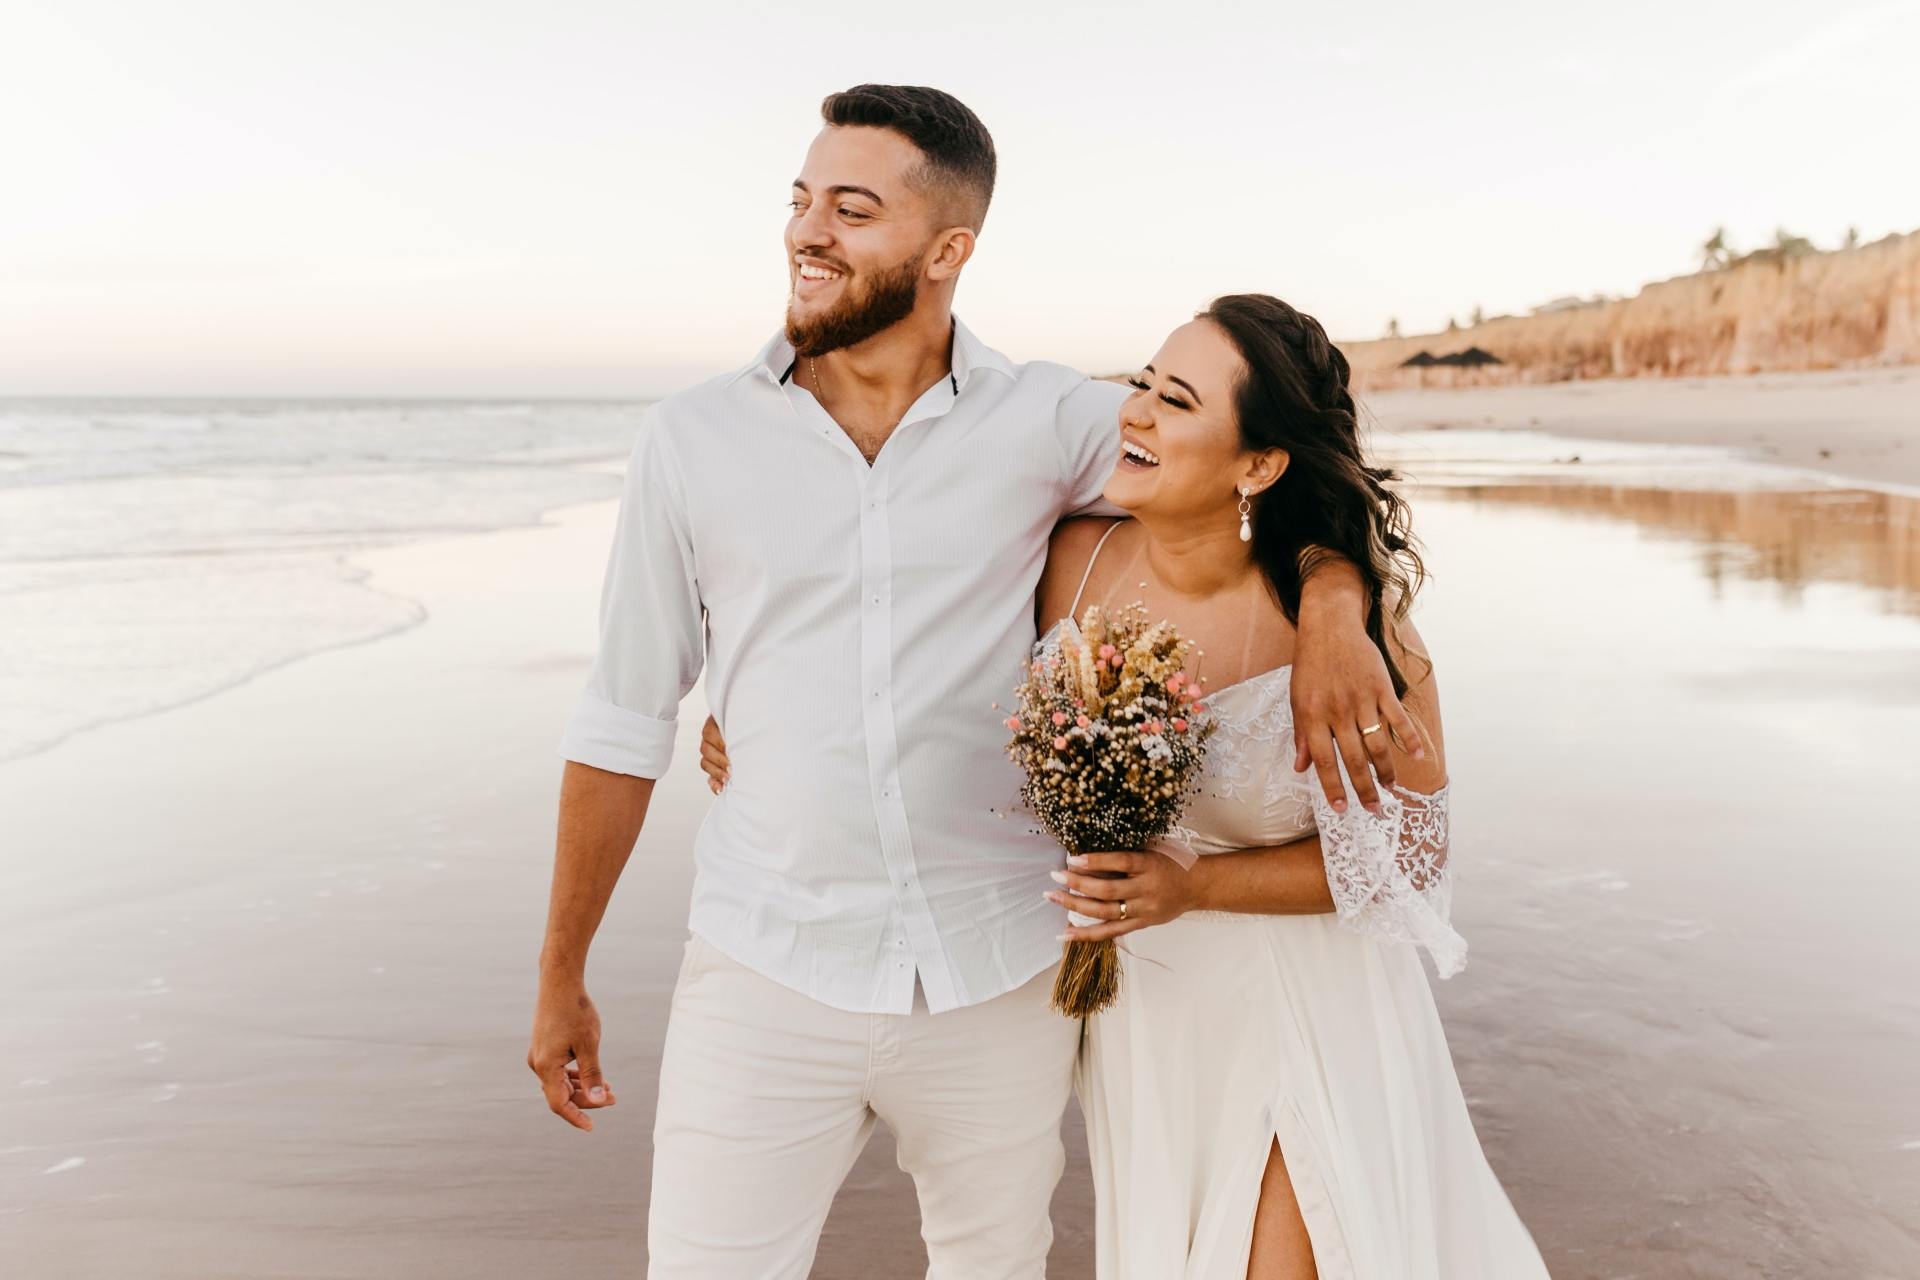 Why Your Wedding Will Be Unforgettable, Based On Your Zodiac Sign